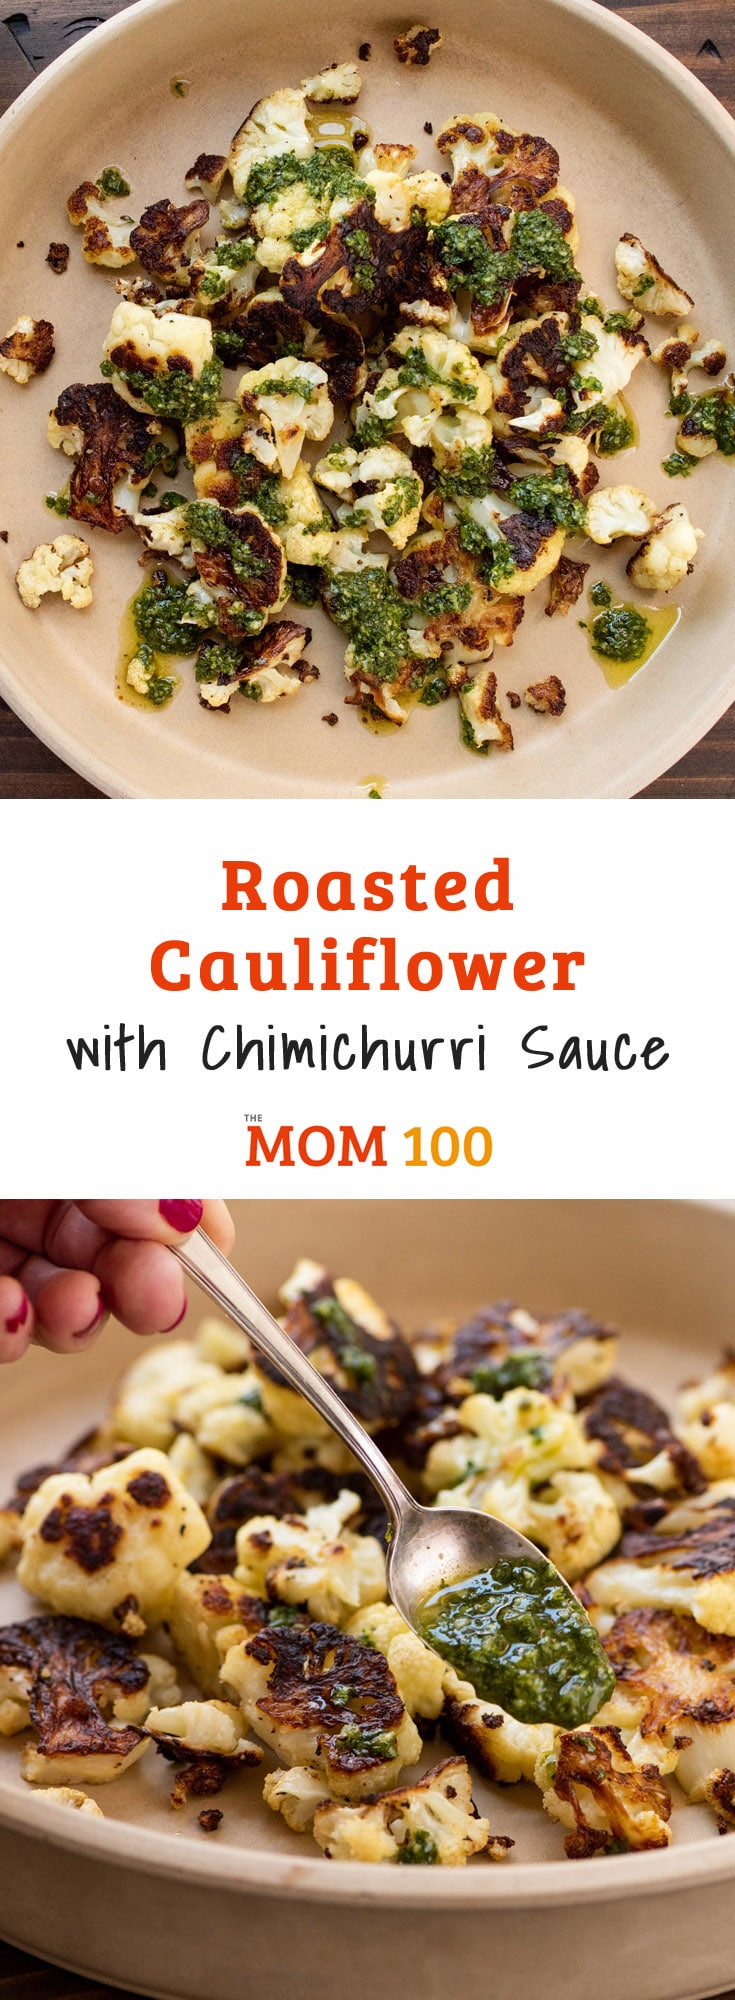 Roasted Cauliflower with Chimichurri Sauce. Chimichurri sauce is a great companion to vegetables, turning plain roasted cauliflower into something special.